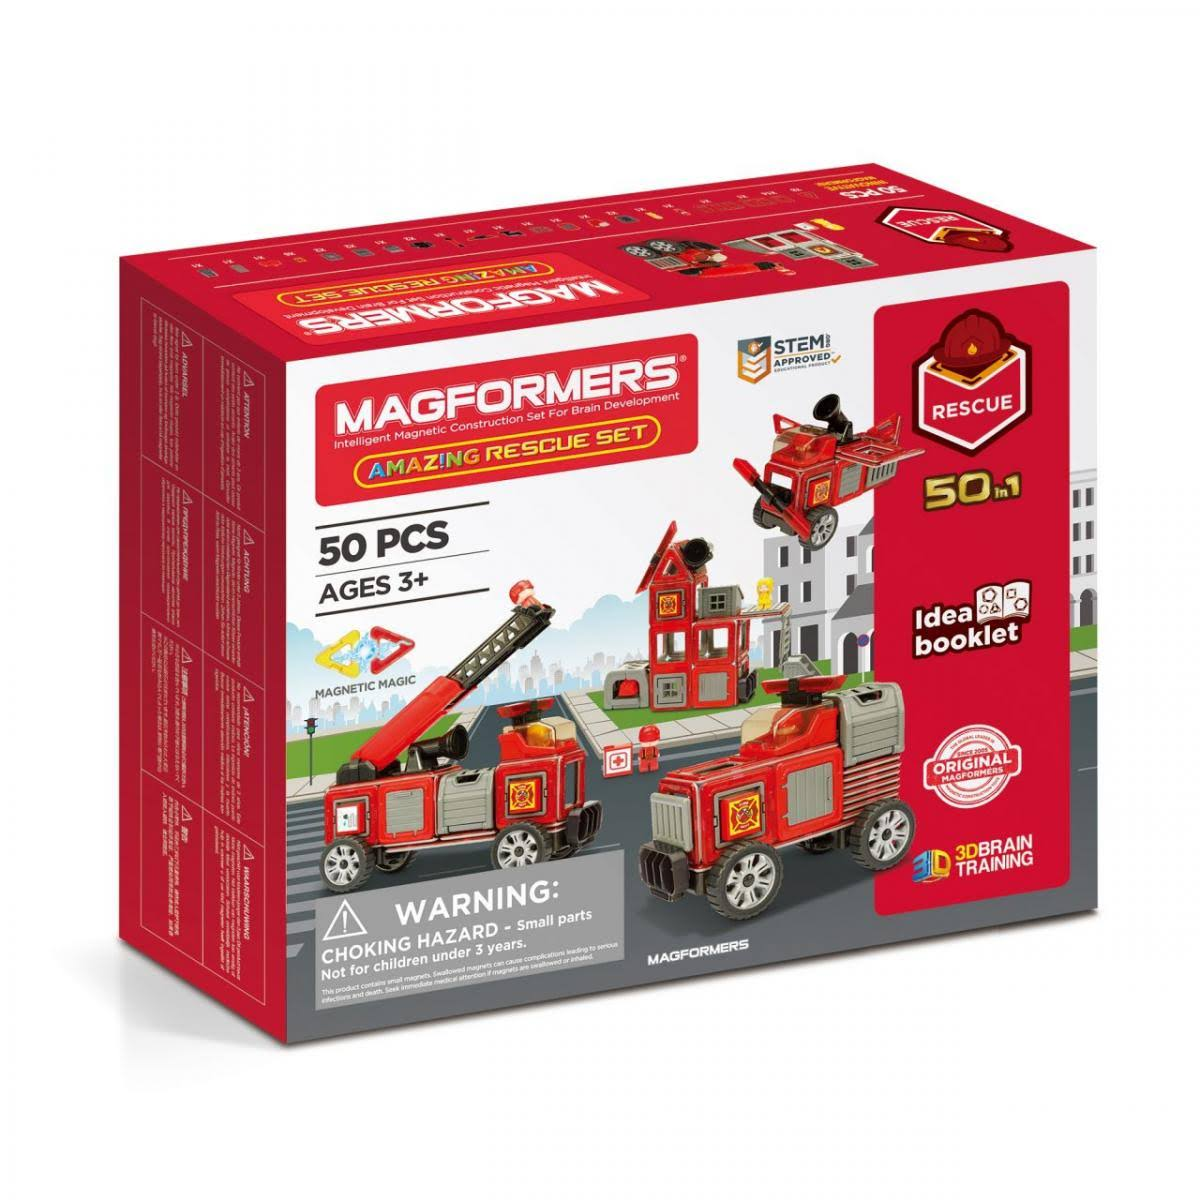 Magformers 50-Piece Amazing Rescue Set